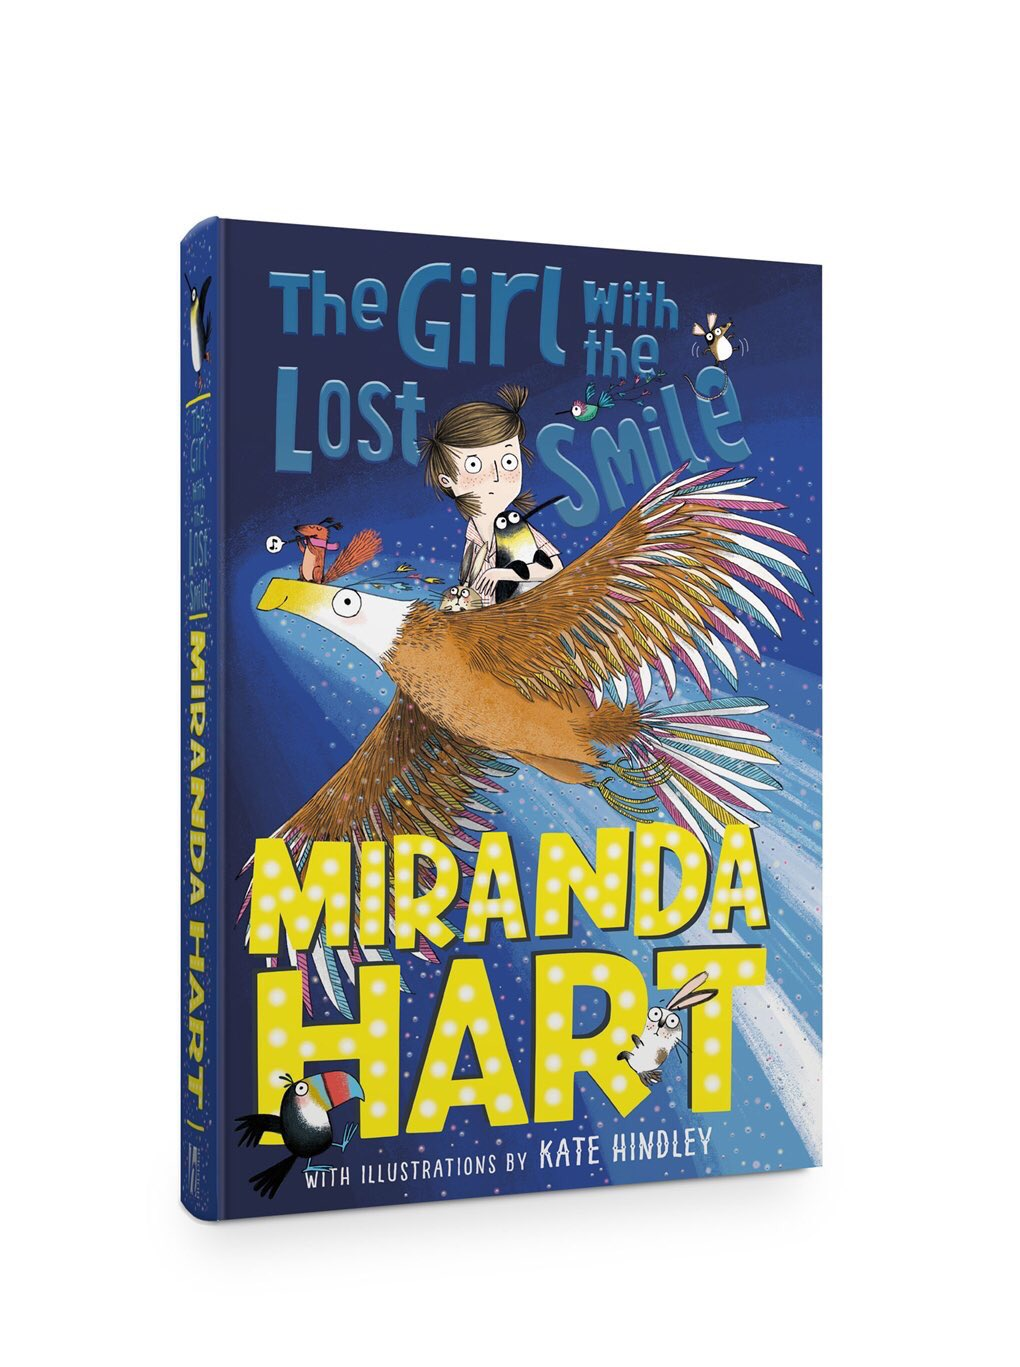 RT @EndOfSitcom: Have you picked up a copy of @mermhart's #TheGirlWithTheLostSmile yet? https://t.co/LxhuHI0qgW https://t.co/SDlvGiWeFf